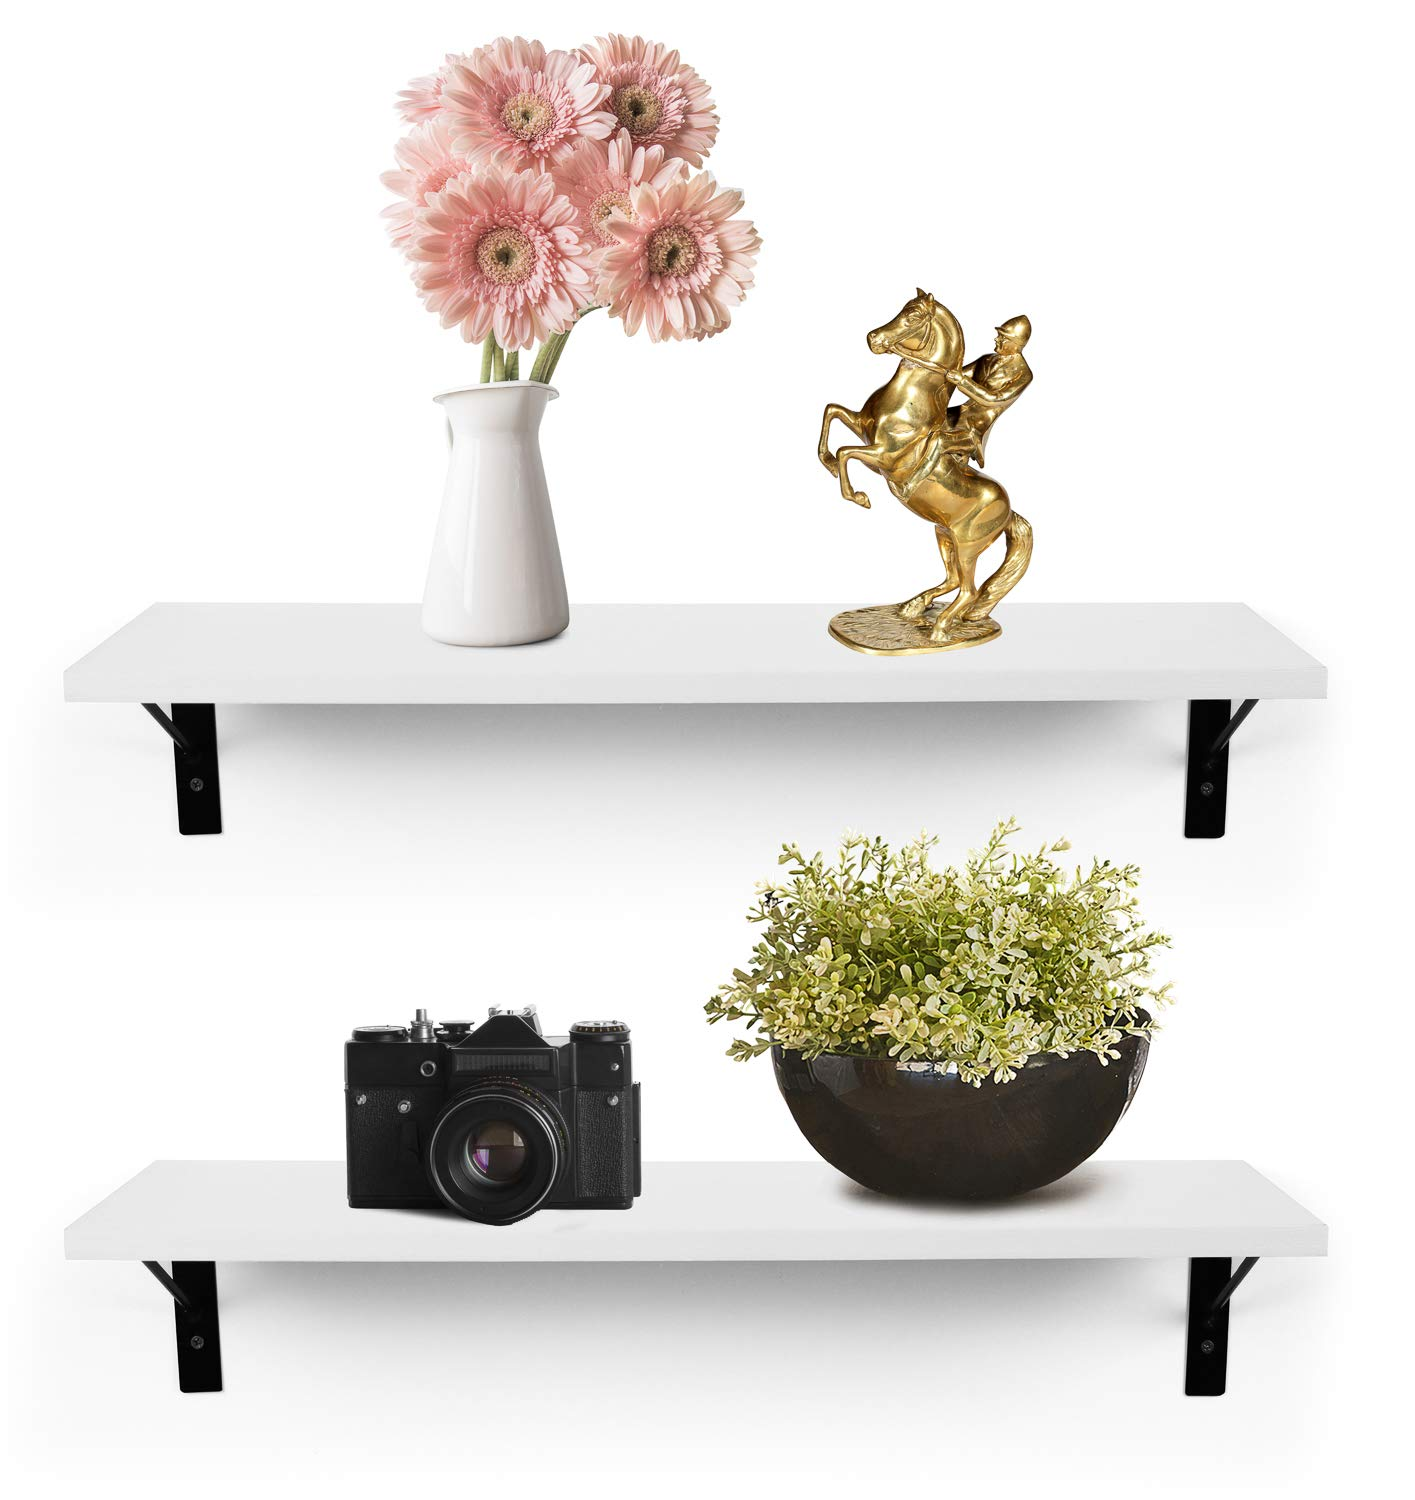 Greenco Wall Mounted Floating Shelves 2 Count Modern Decor White-Set of 2 Display Ledge